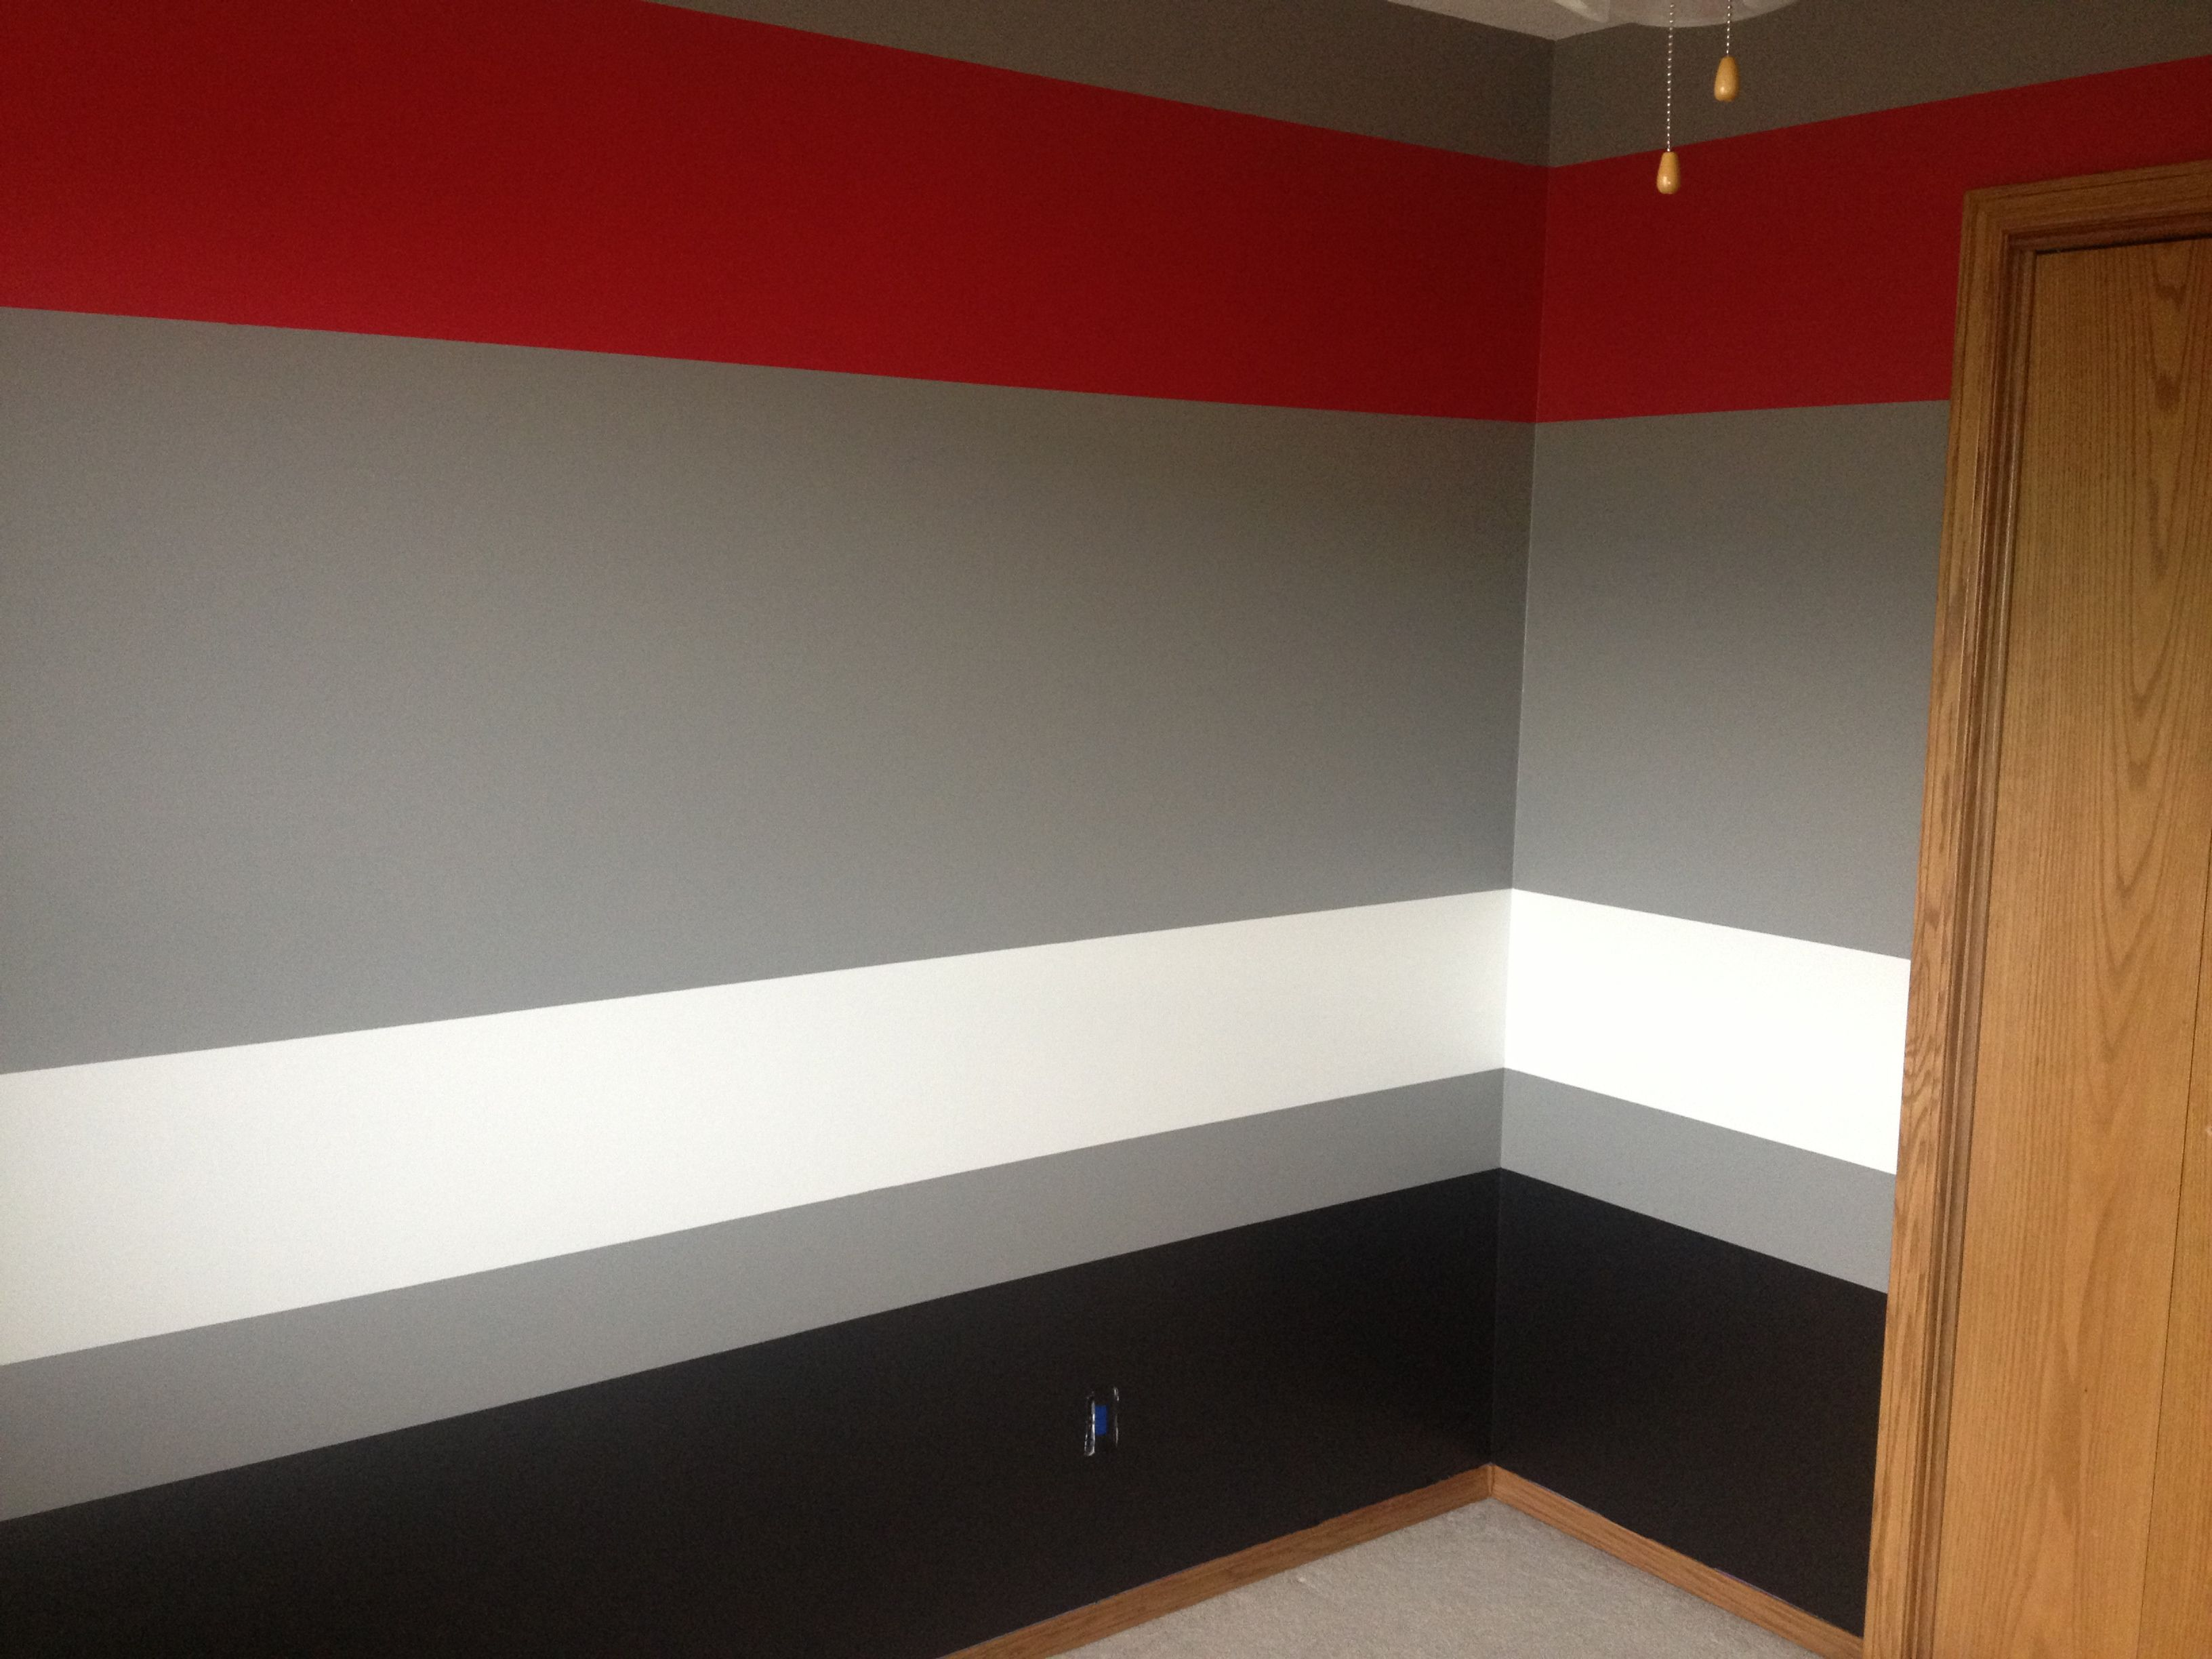 Red Black And Grey Bedrooms Painted Room Grey Red White Black Rooms Pinterest